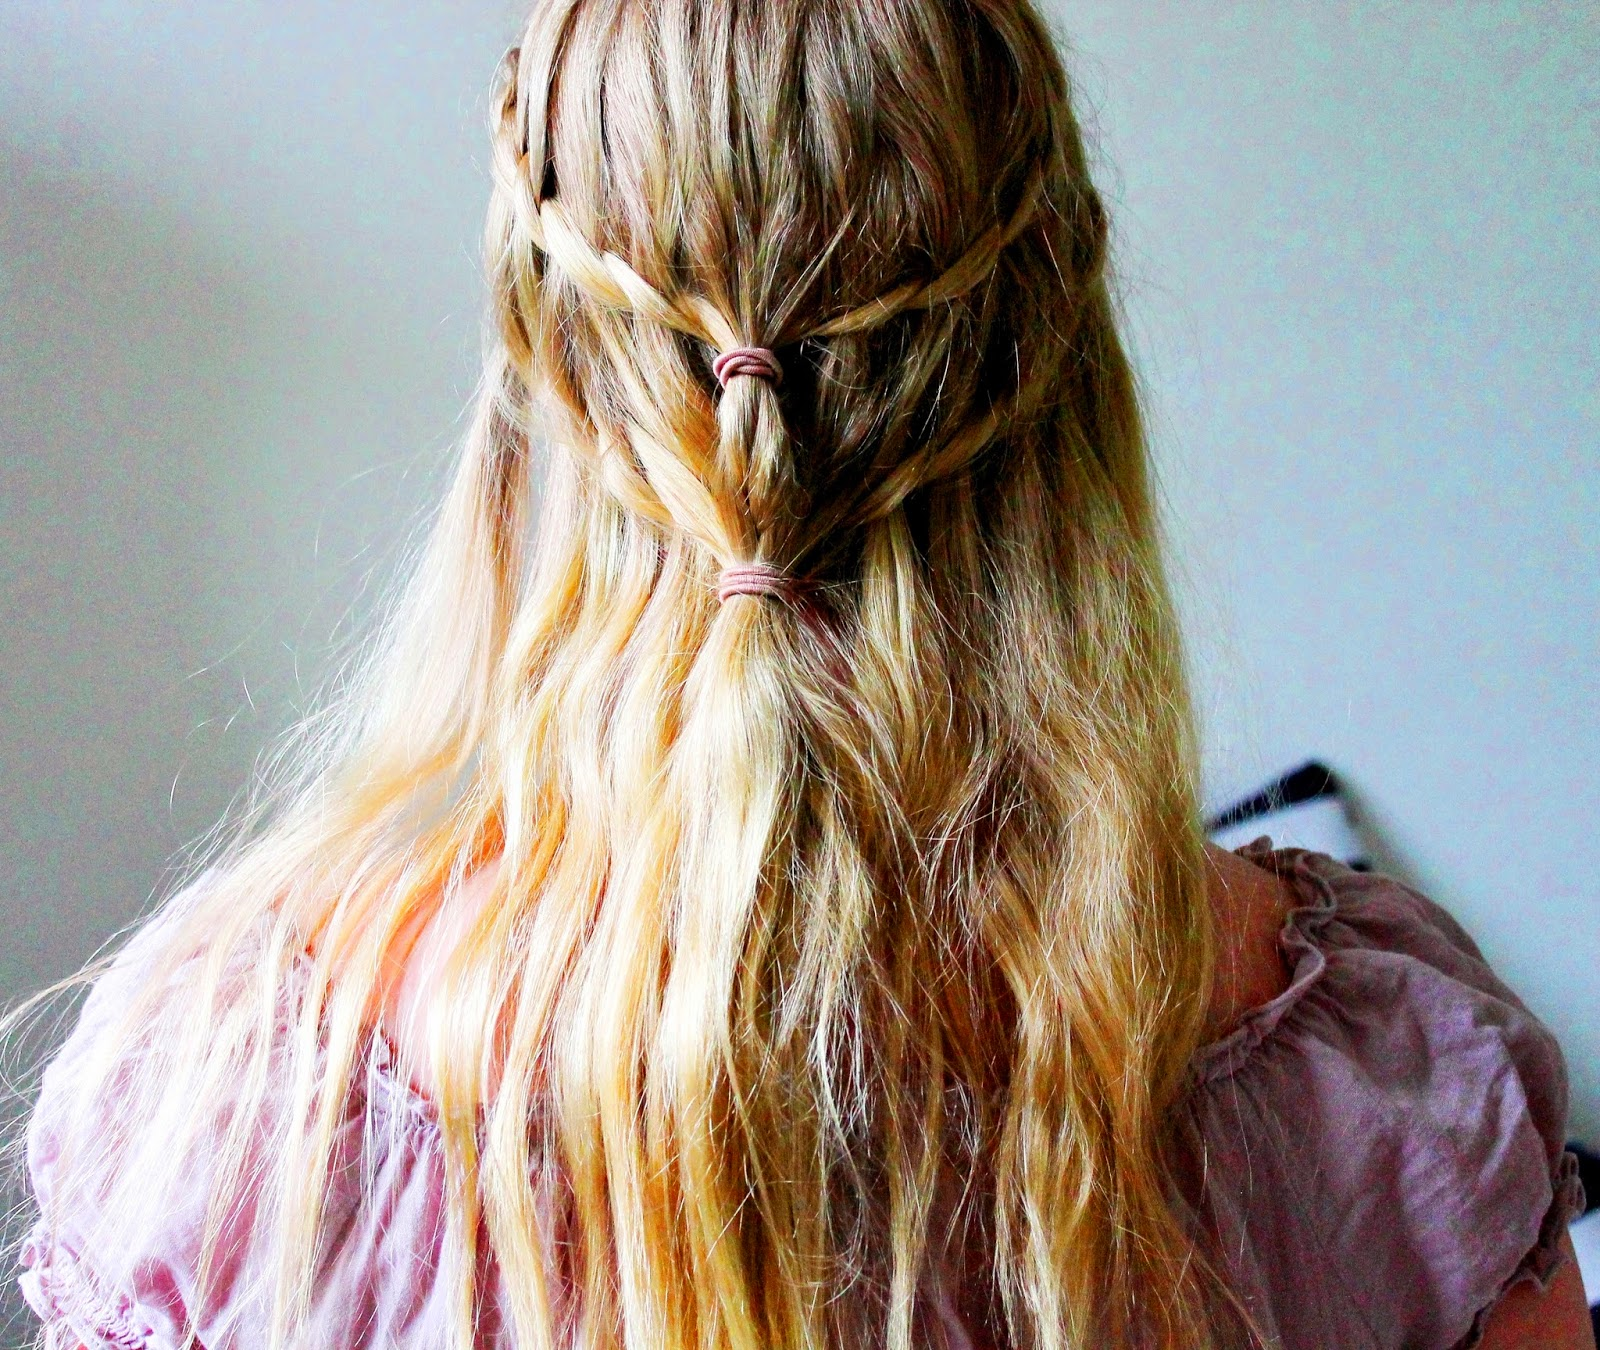 Game of thrones double waterfall braid how to | Alinan kotona blog